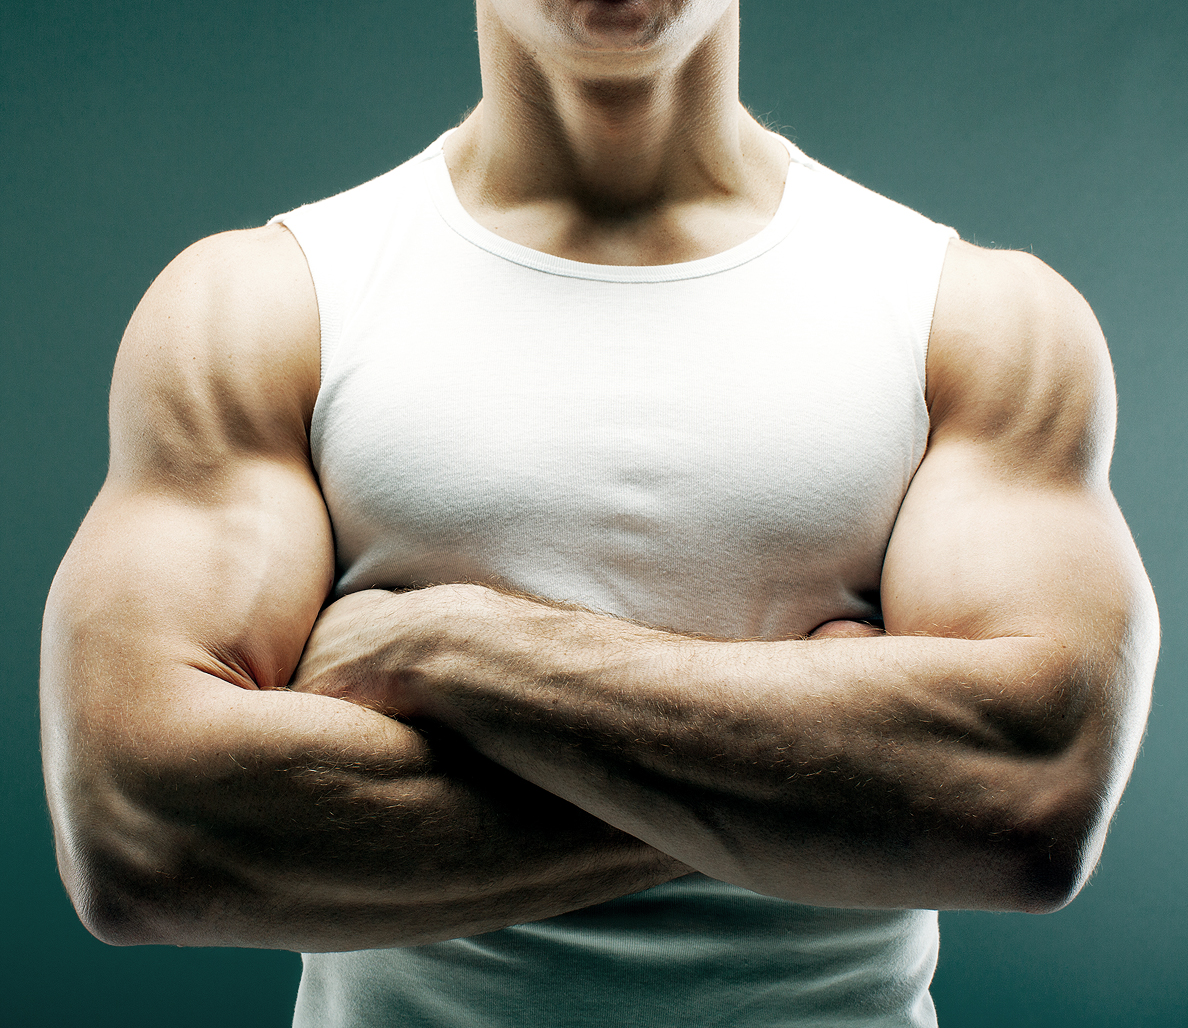 The 20 Best Forearms Exercises of All Time